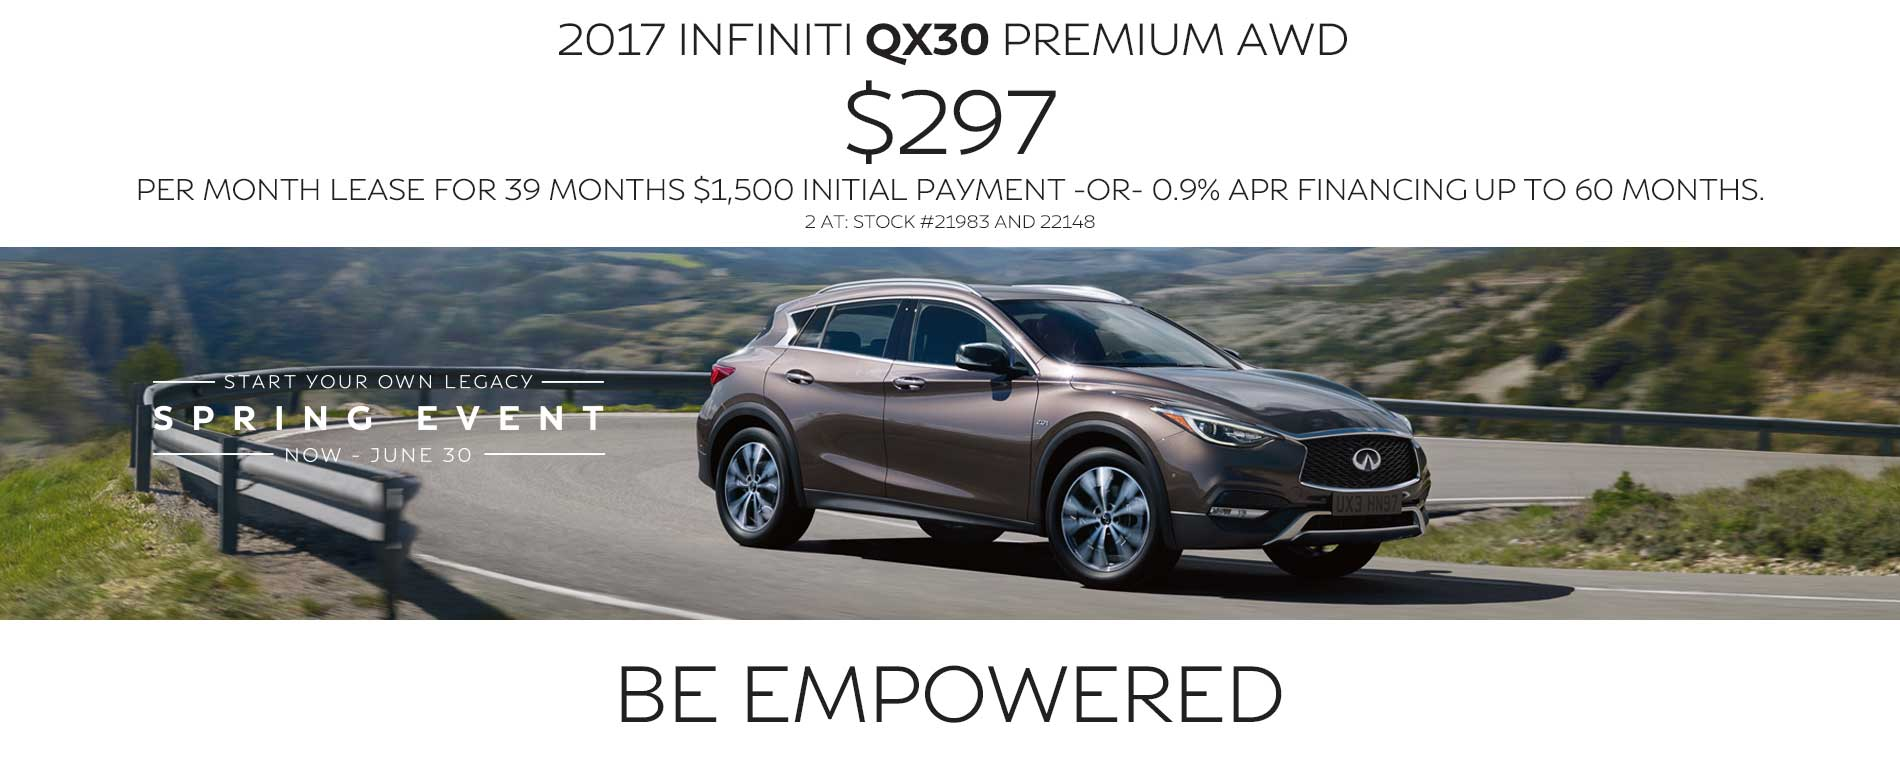 BE empowered. Lease a 2017 INFINITI QX30 for $297 per month with $1,500 due at signing or 0.9% APR financing up to 60 months.